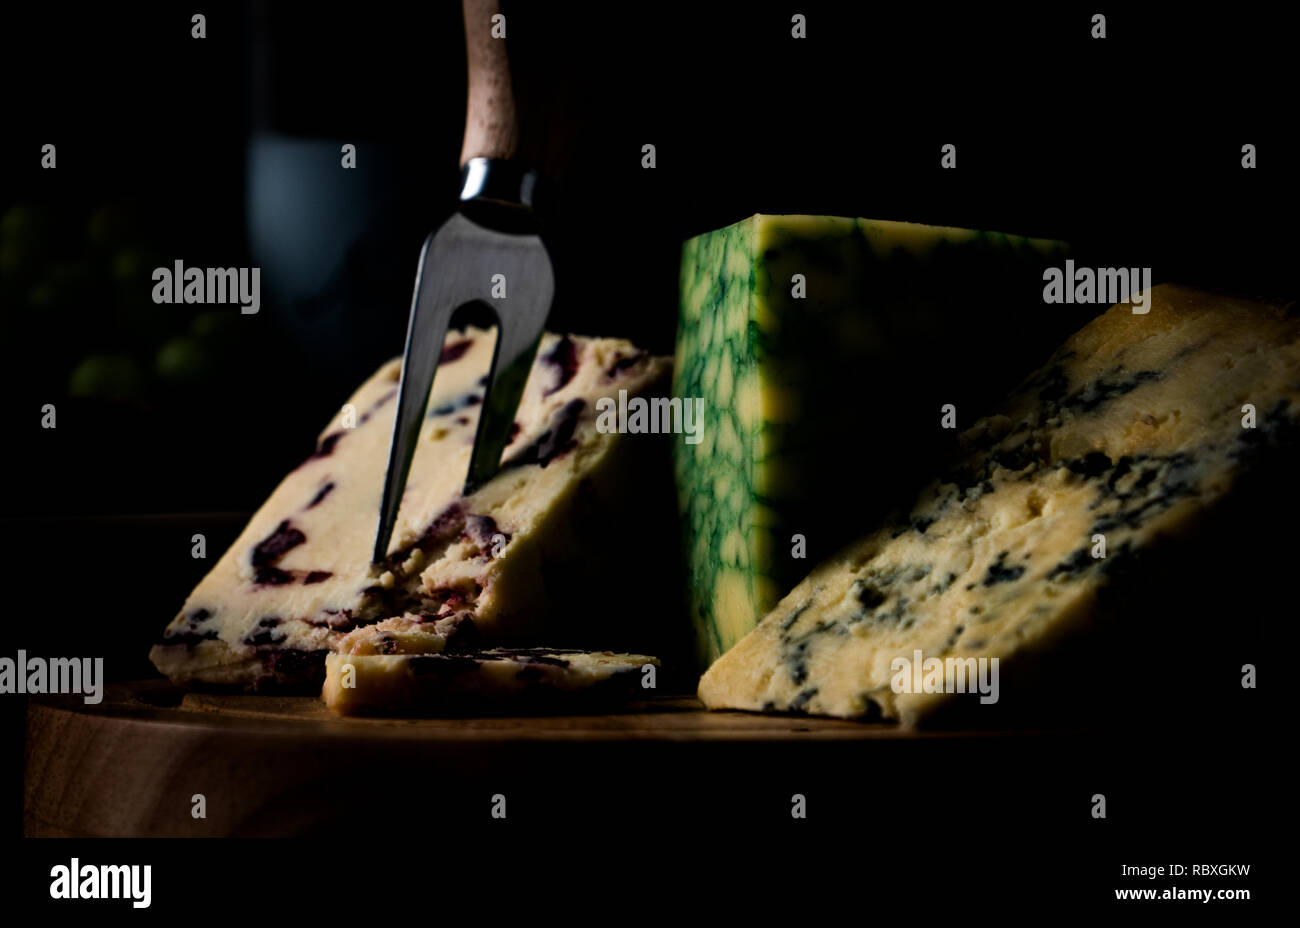 dark mood cheese board selection with Wensleydale, Stilton and Sage Derby against a dark background Stock Photo